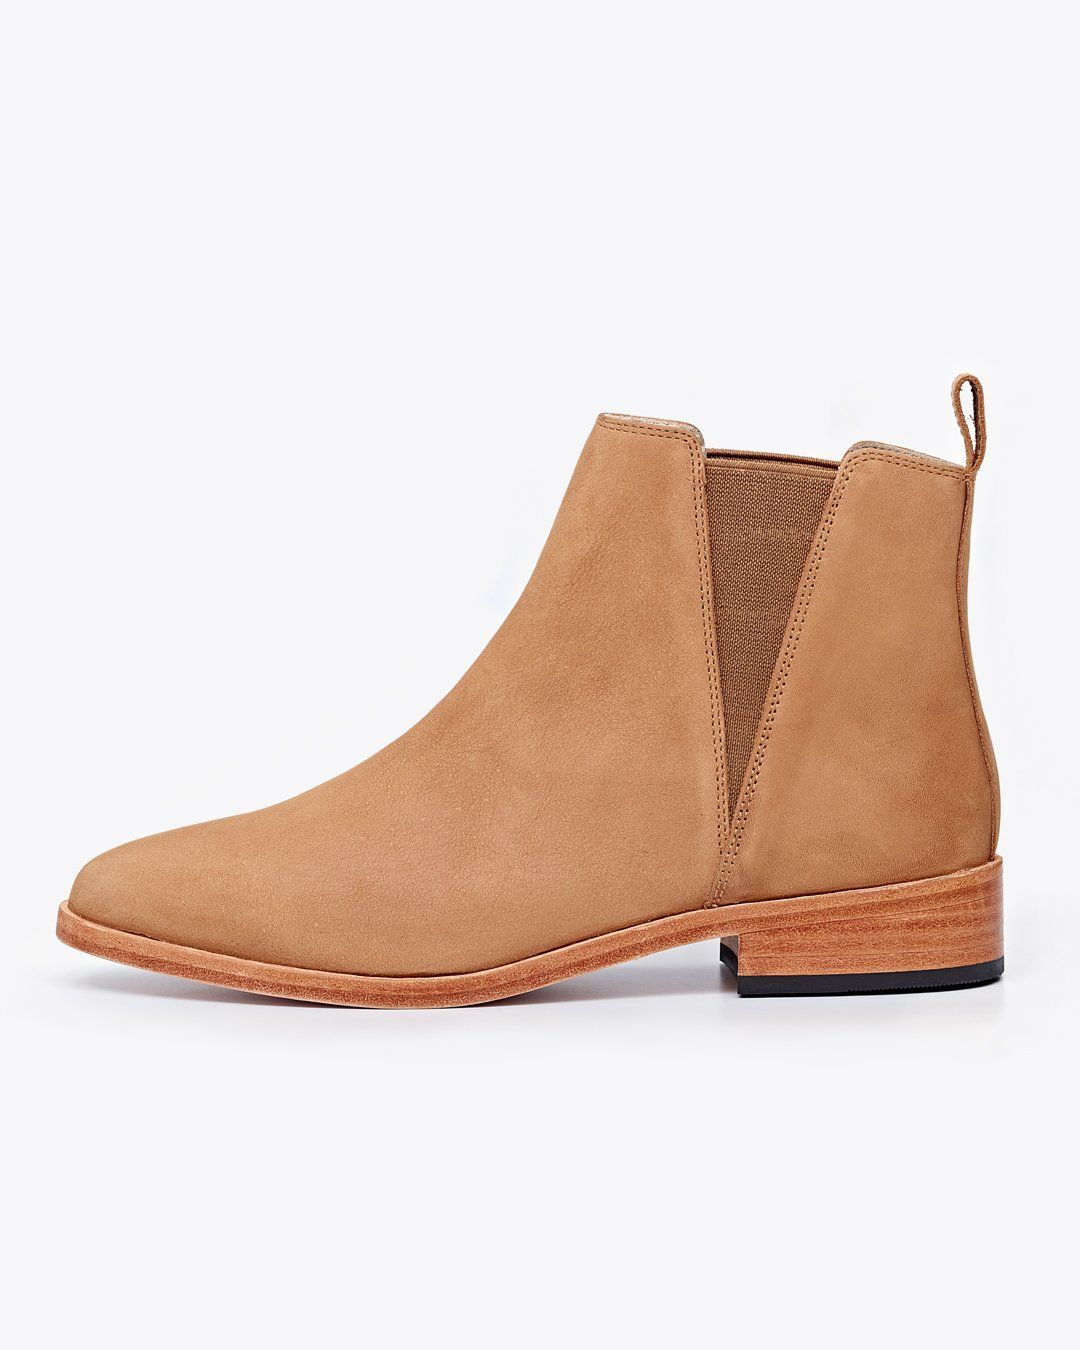 Chelsea Boot Sand | Exchange Only Women's Leather Boot Nisolo